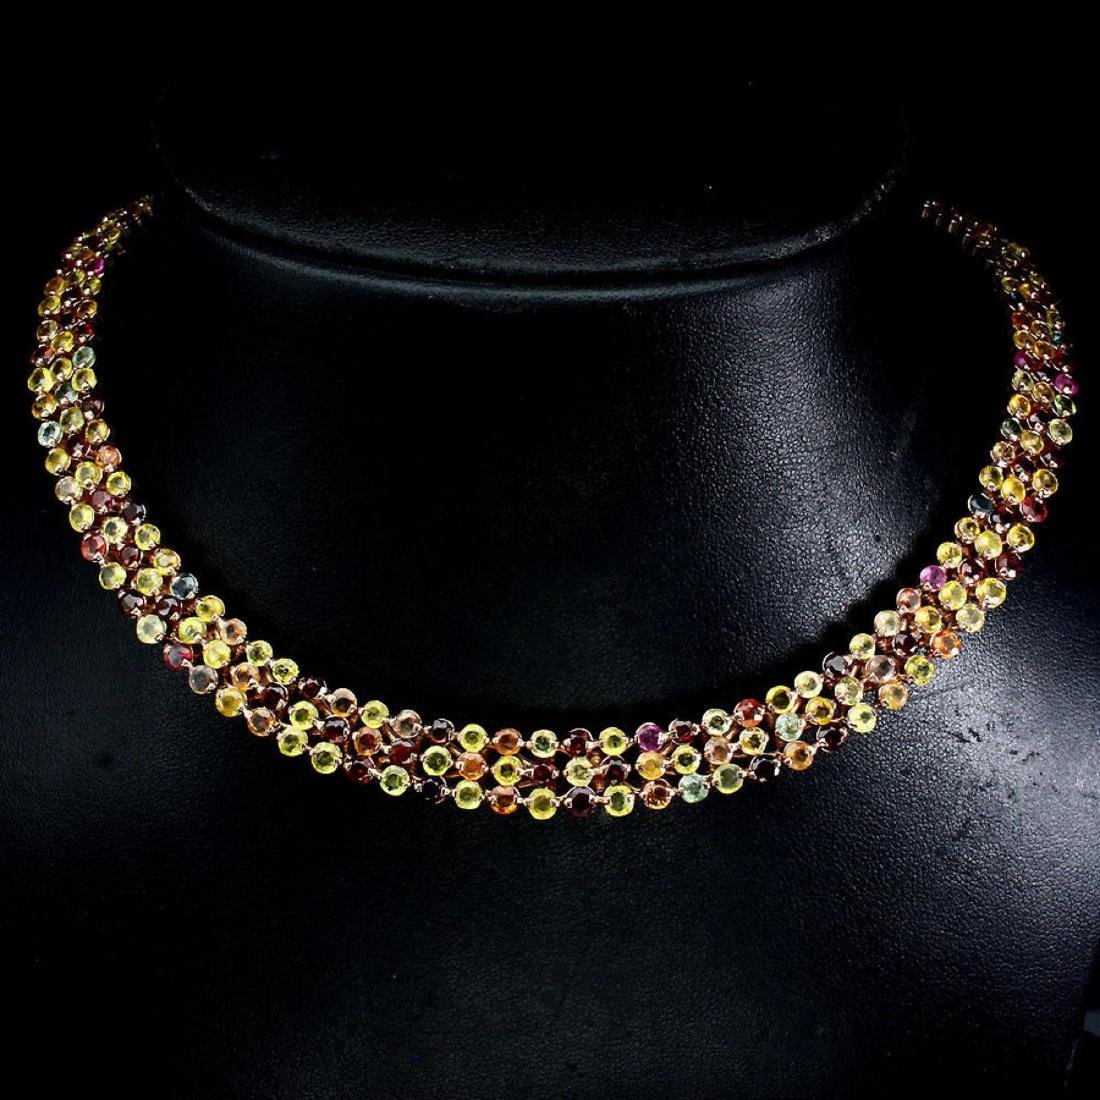 Natural Stunning Fancy Sapphire 351.54 Carats Necklace